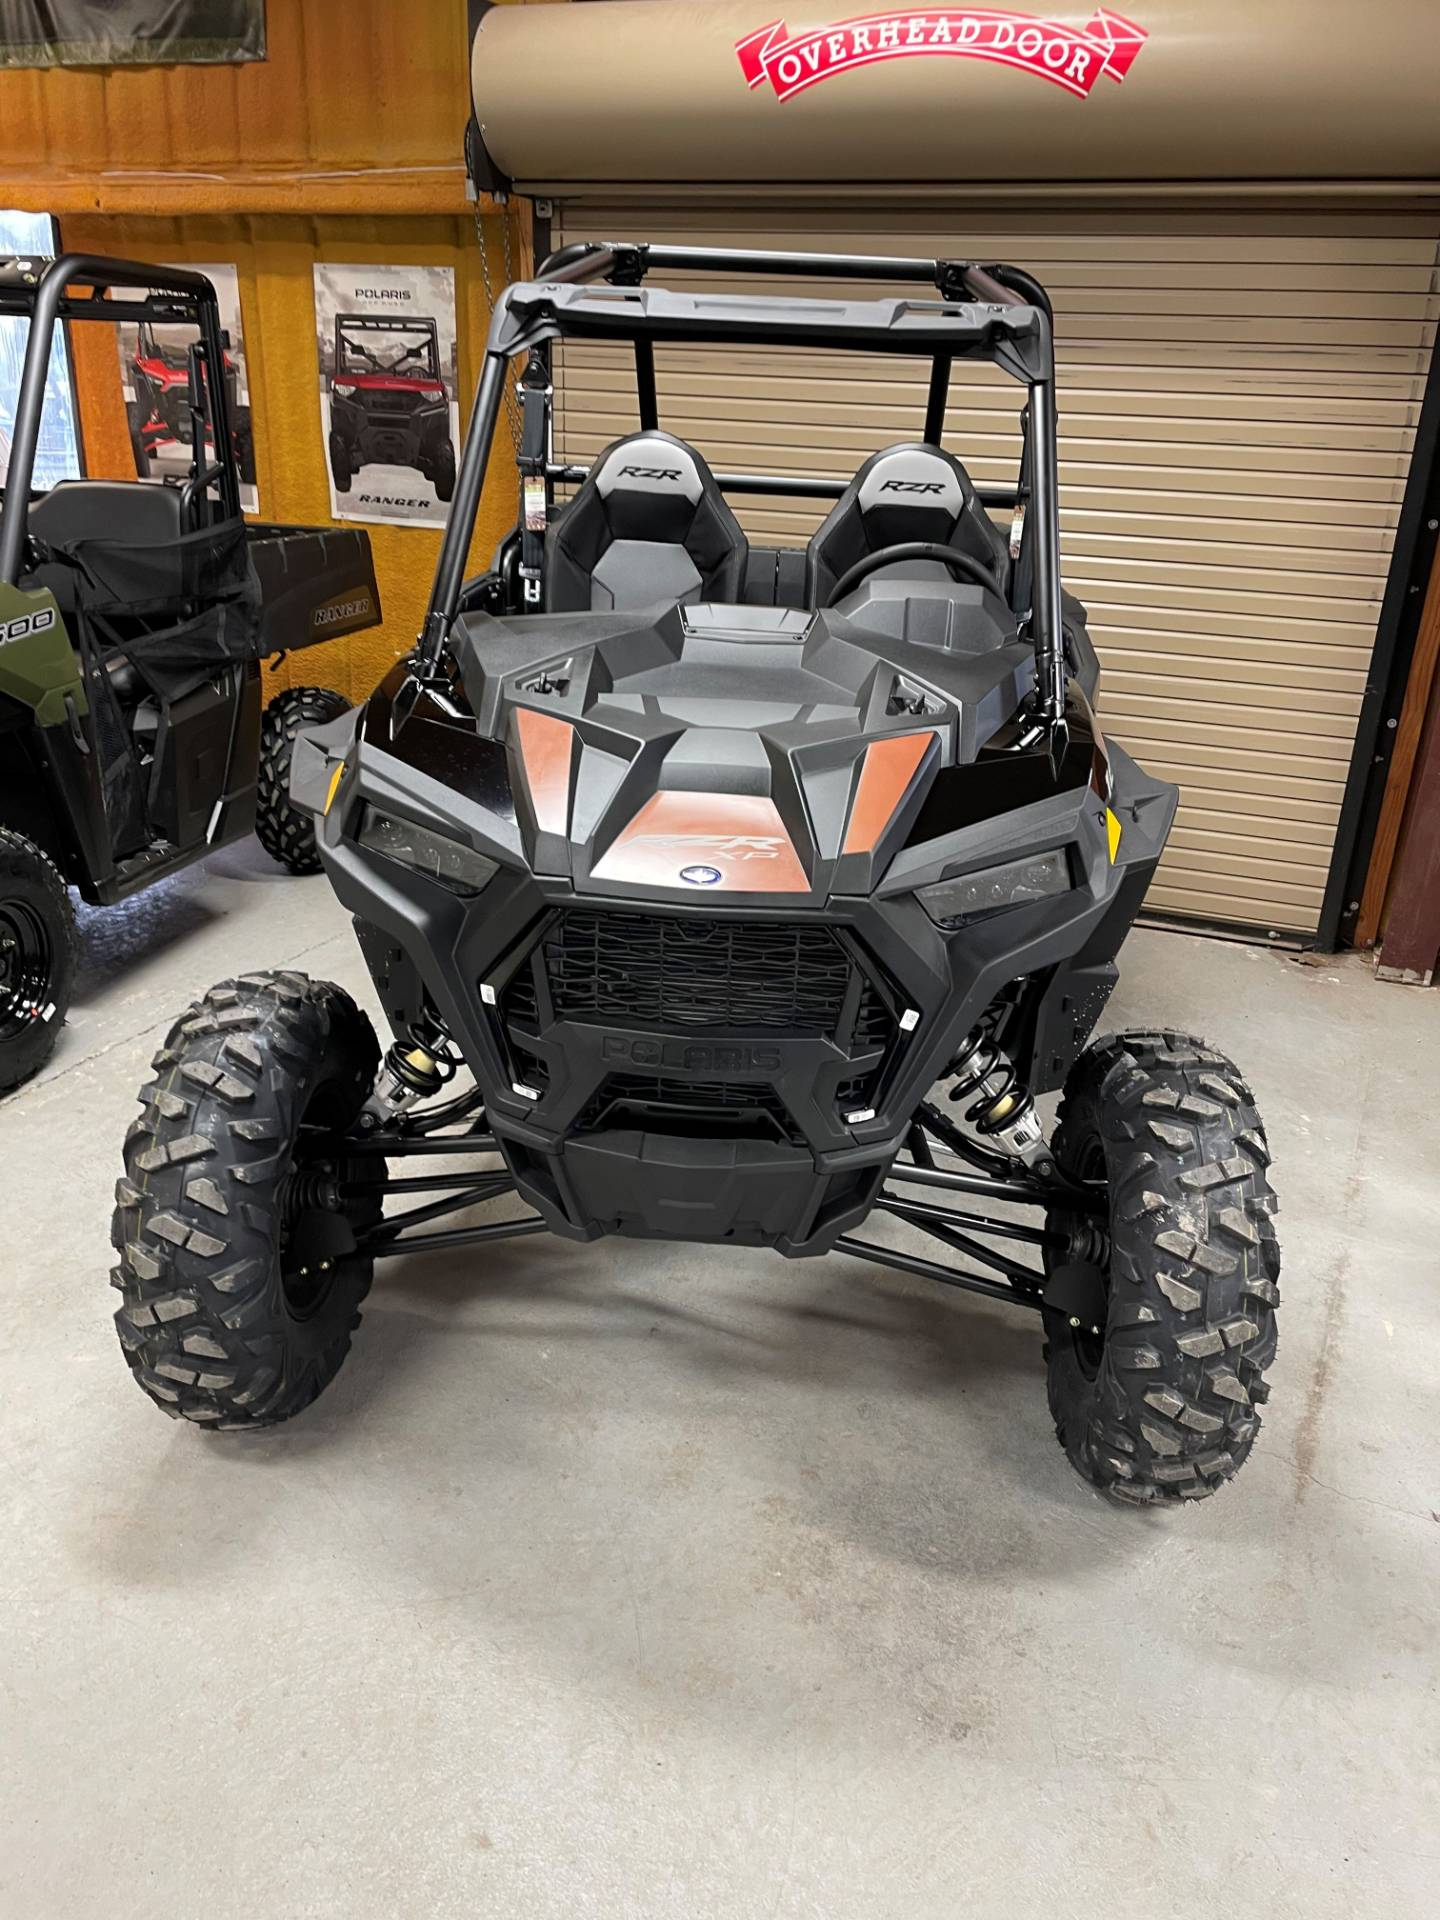 2021 Polaris RZR XP 1000 Sport in Pocono Lake, Pennsylvania - Photo 2